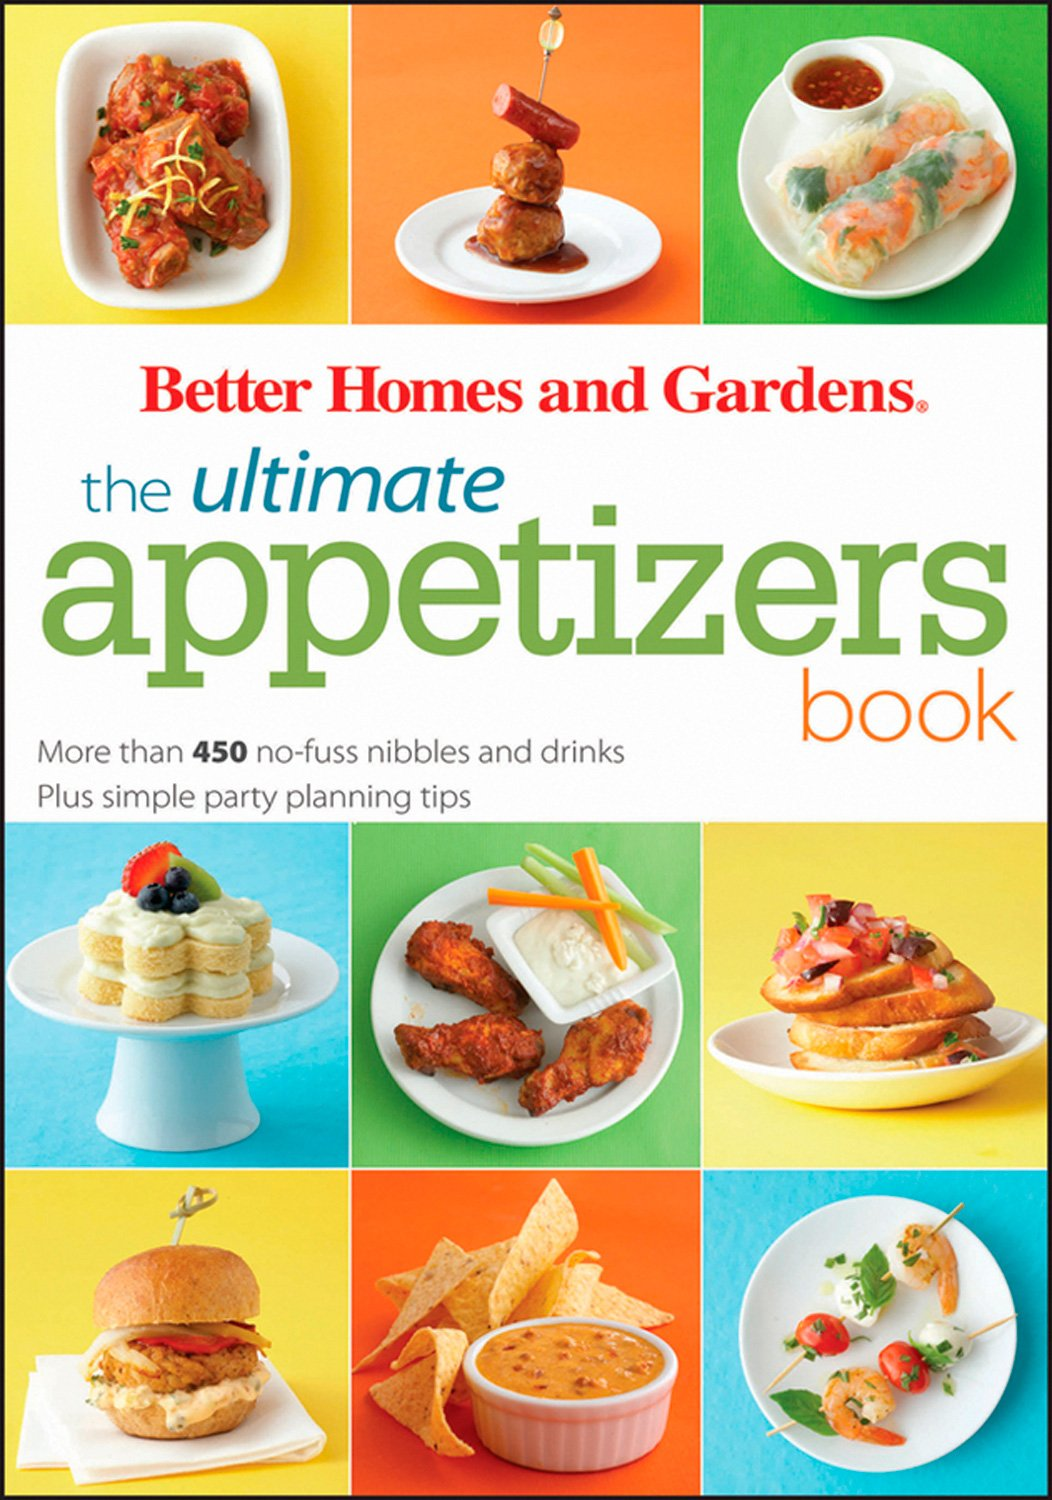 Download The Ultimate Appetizers Book: More than 450 No-Fuss Nibbles and Drinks Plus simple party planning tips (Better Homes & Gardens Ultimate) PDF